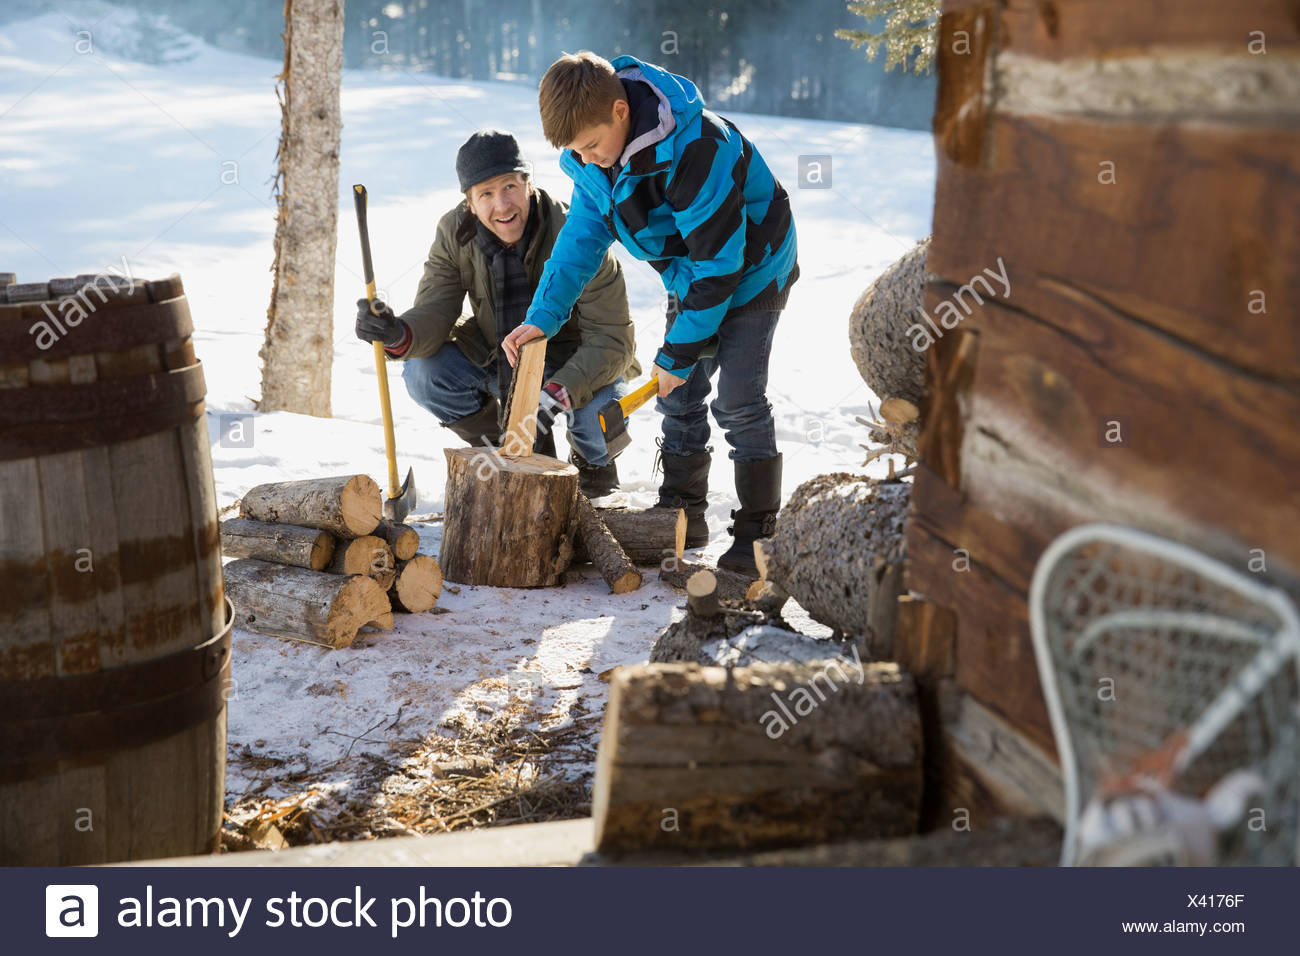 Father and son chopping firewood outside of log cabin - Stock Image